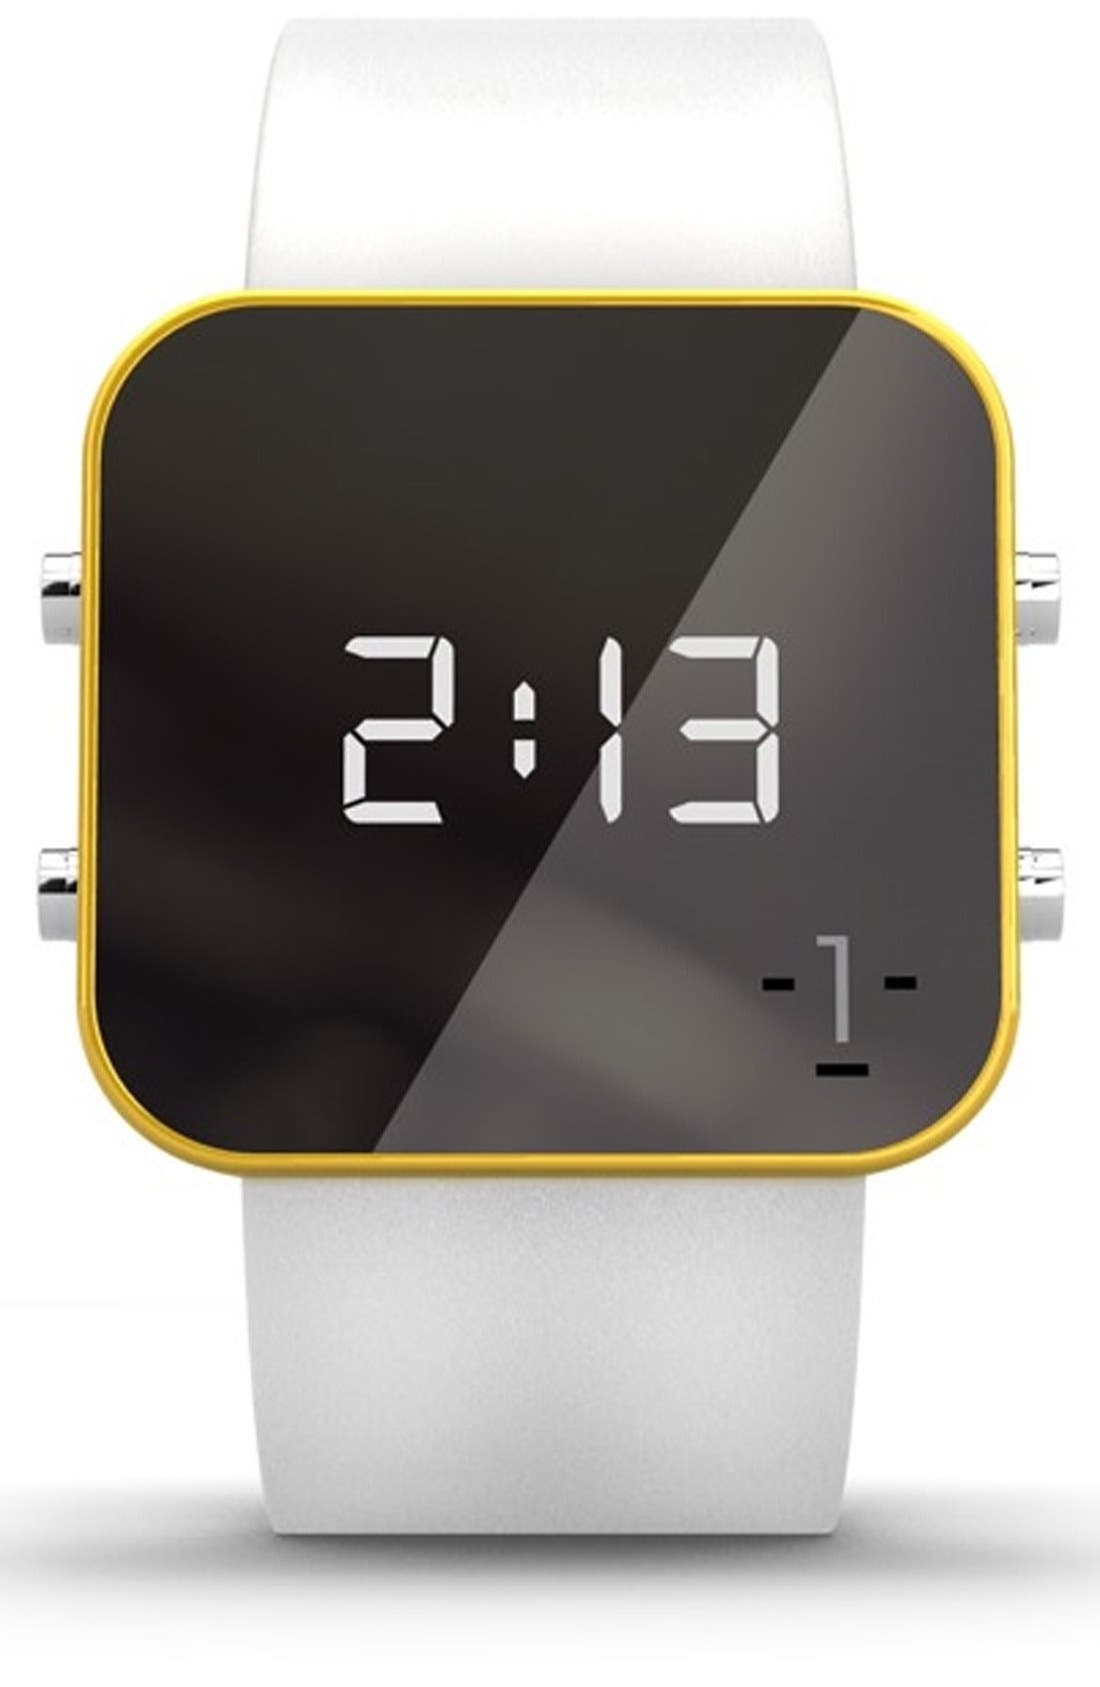 Main Image - 1:Face 'Water' Square Digital Silicone Strap Watch, 38mm